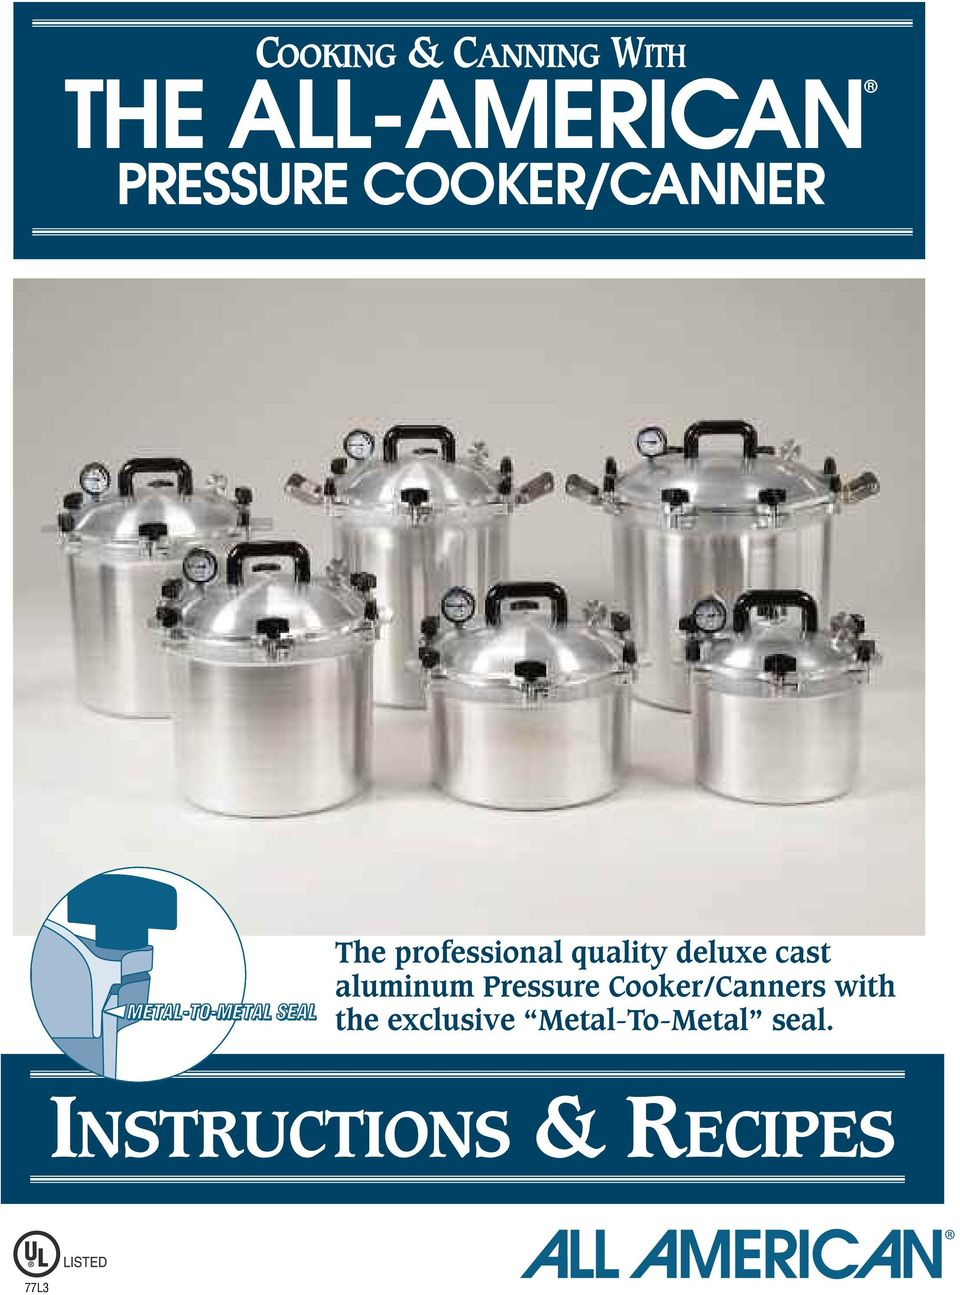 cast aluminum Pressure Cooker/Canners with the